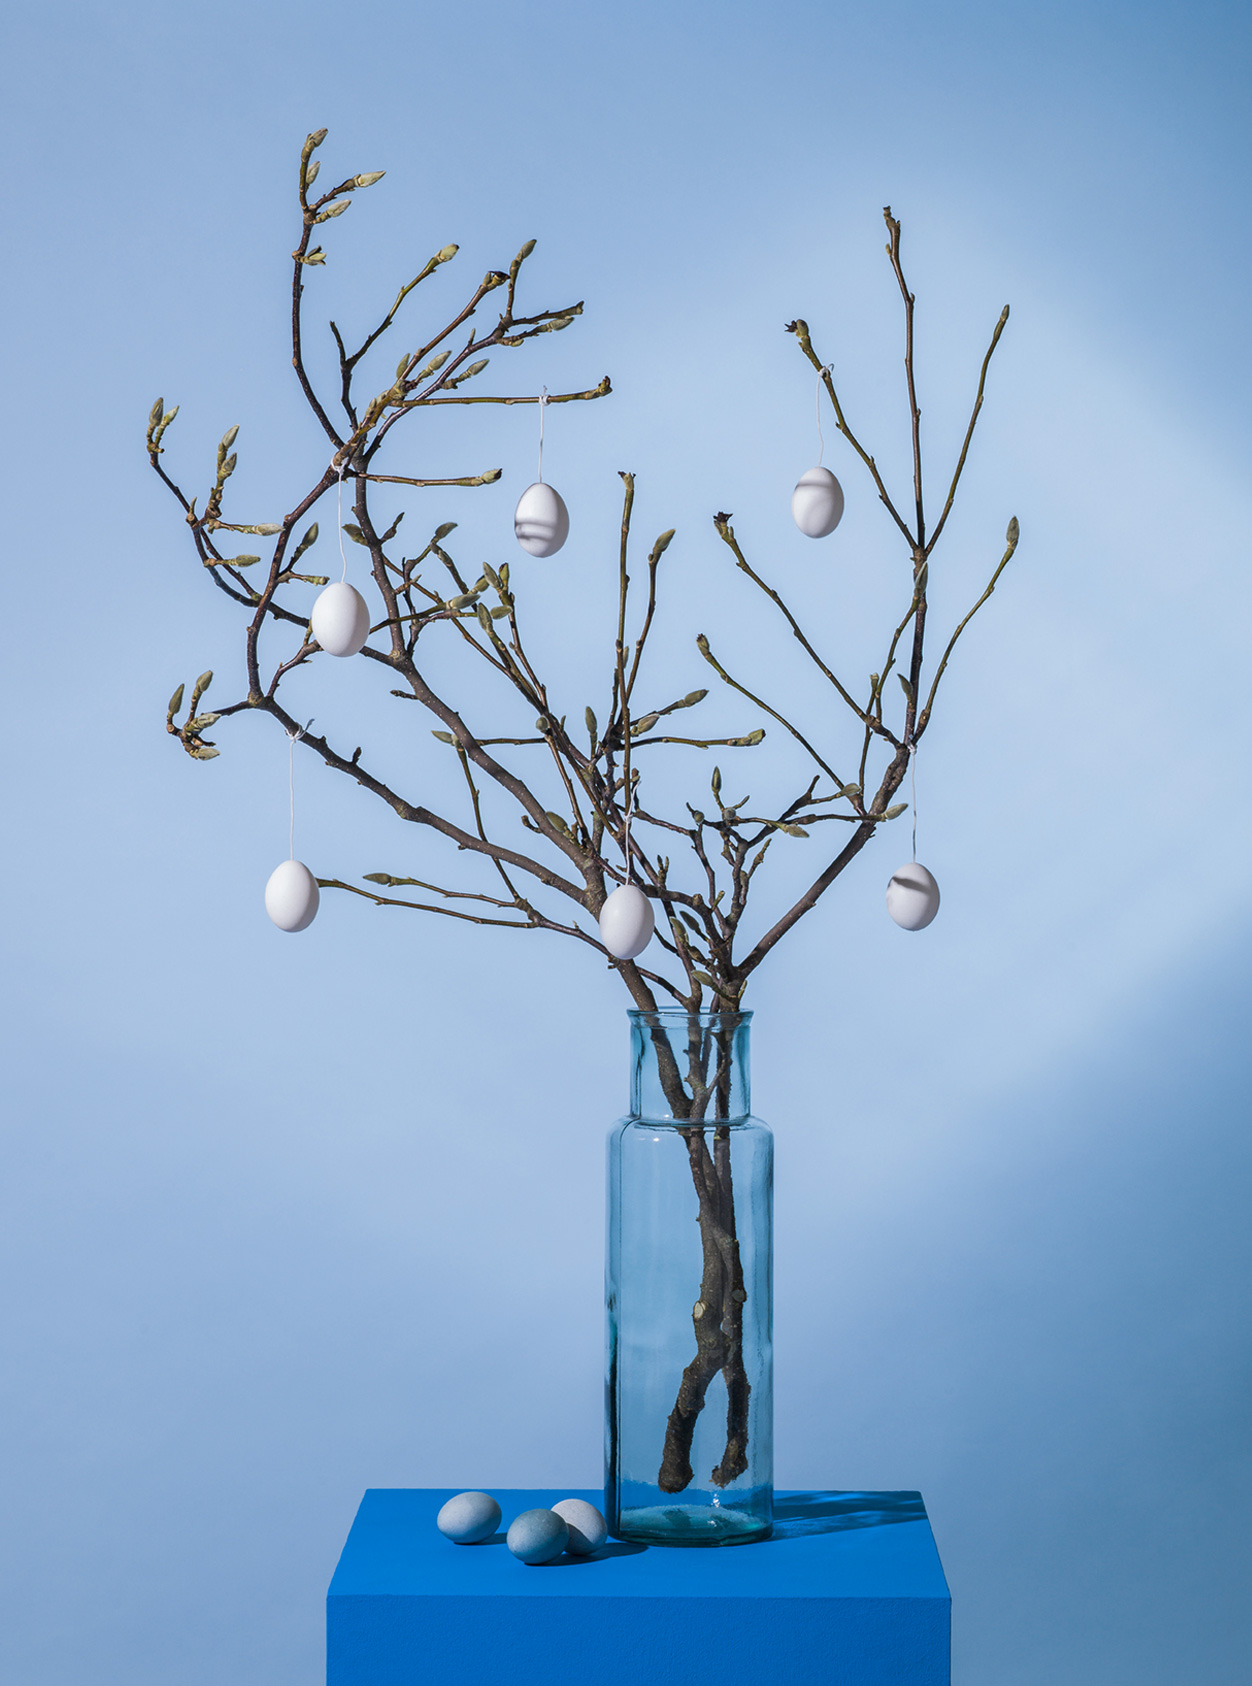 Easter themed, blue still life with branches and easter egg decoration